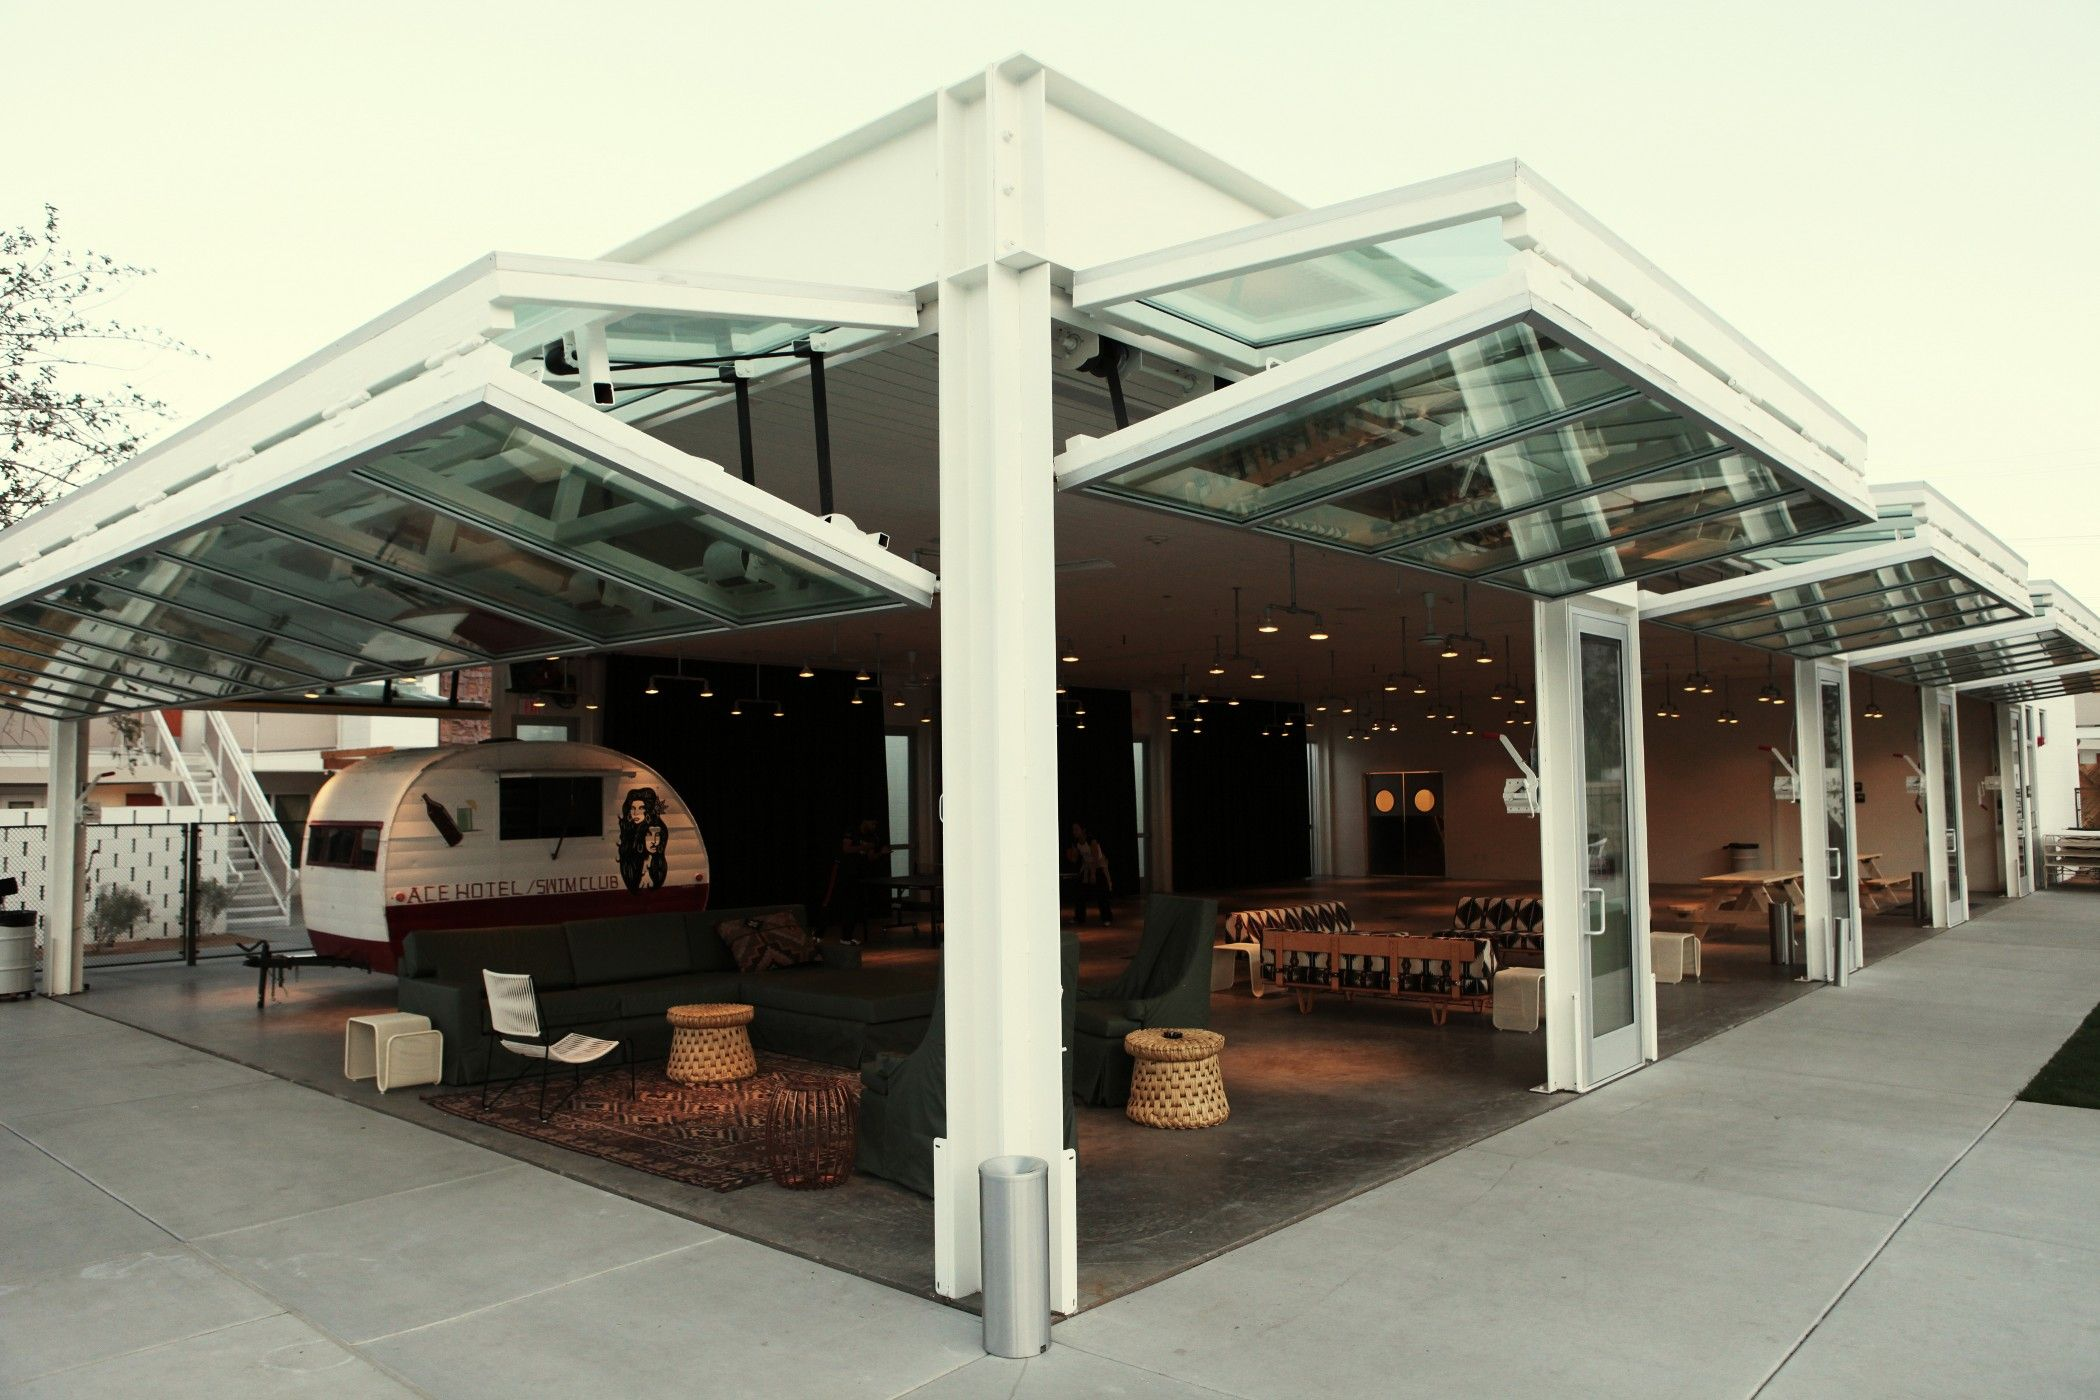 Vertical Folding Doors Ace Hotel Palm Springs Ace Hotel Architecture